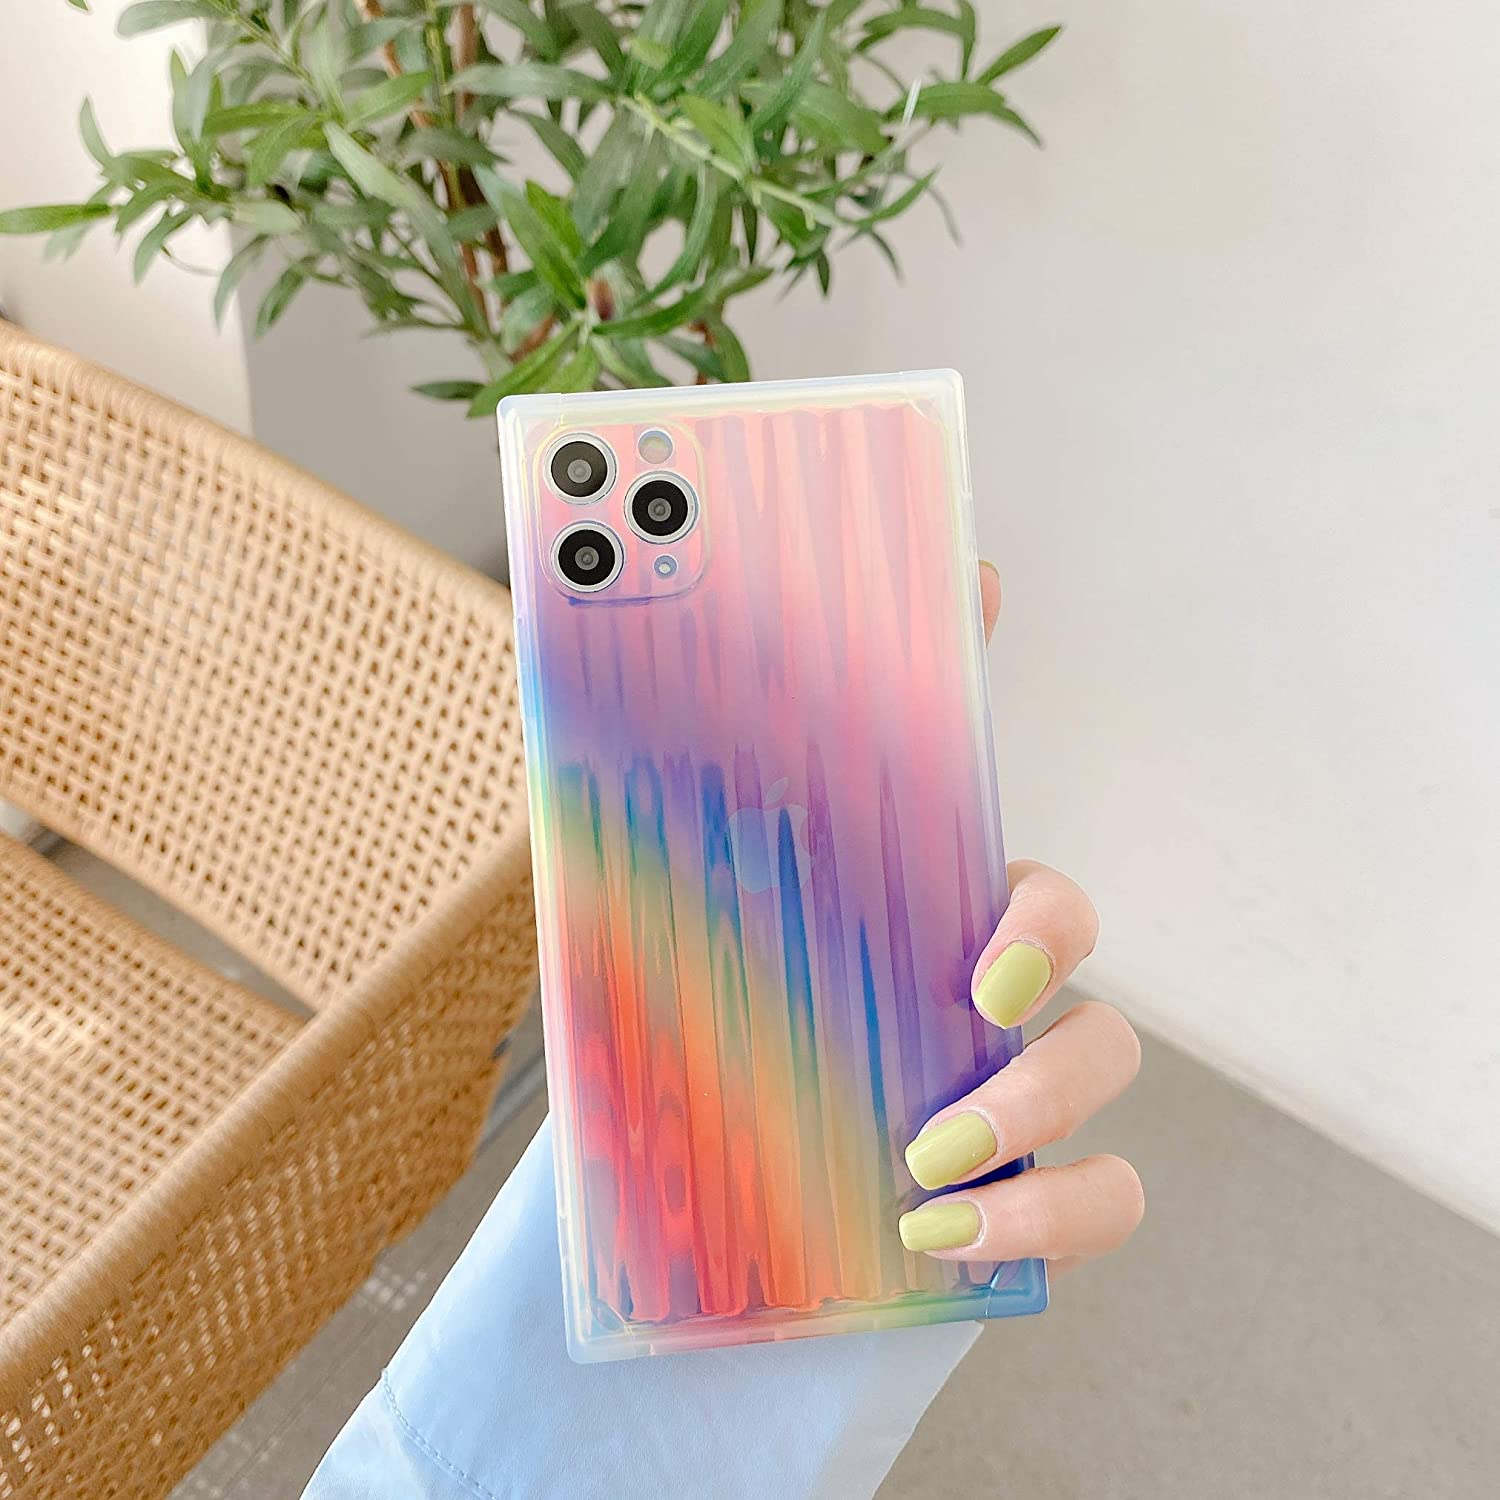 Cocomii Square Holographic Clear iPhone Xs Max Case, Slim Thin Glossy Soft TPU Silicone Rubber Gel Shiny Gradient Reflection Fashion Bumper Cover for Apple iPhone Xs Max 6.5 Inch 2018 (Rainbow)